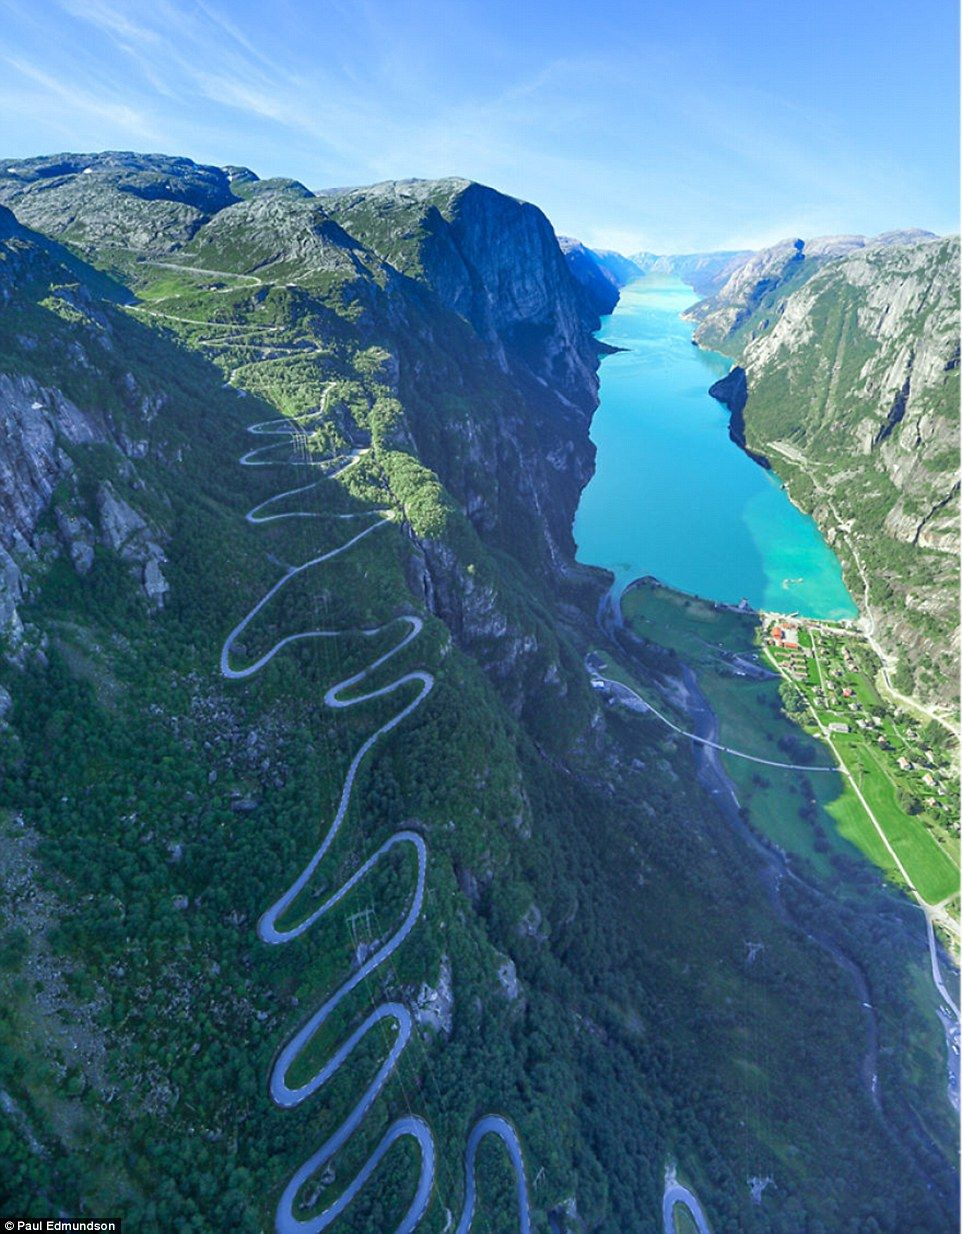 Norway' Spectacular Fjords And Majestic Landscape